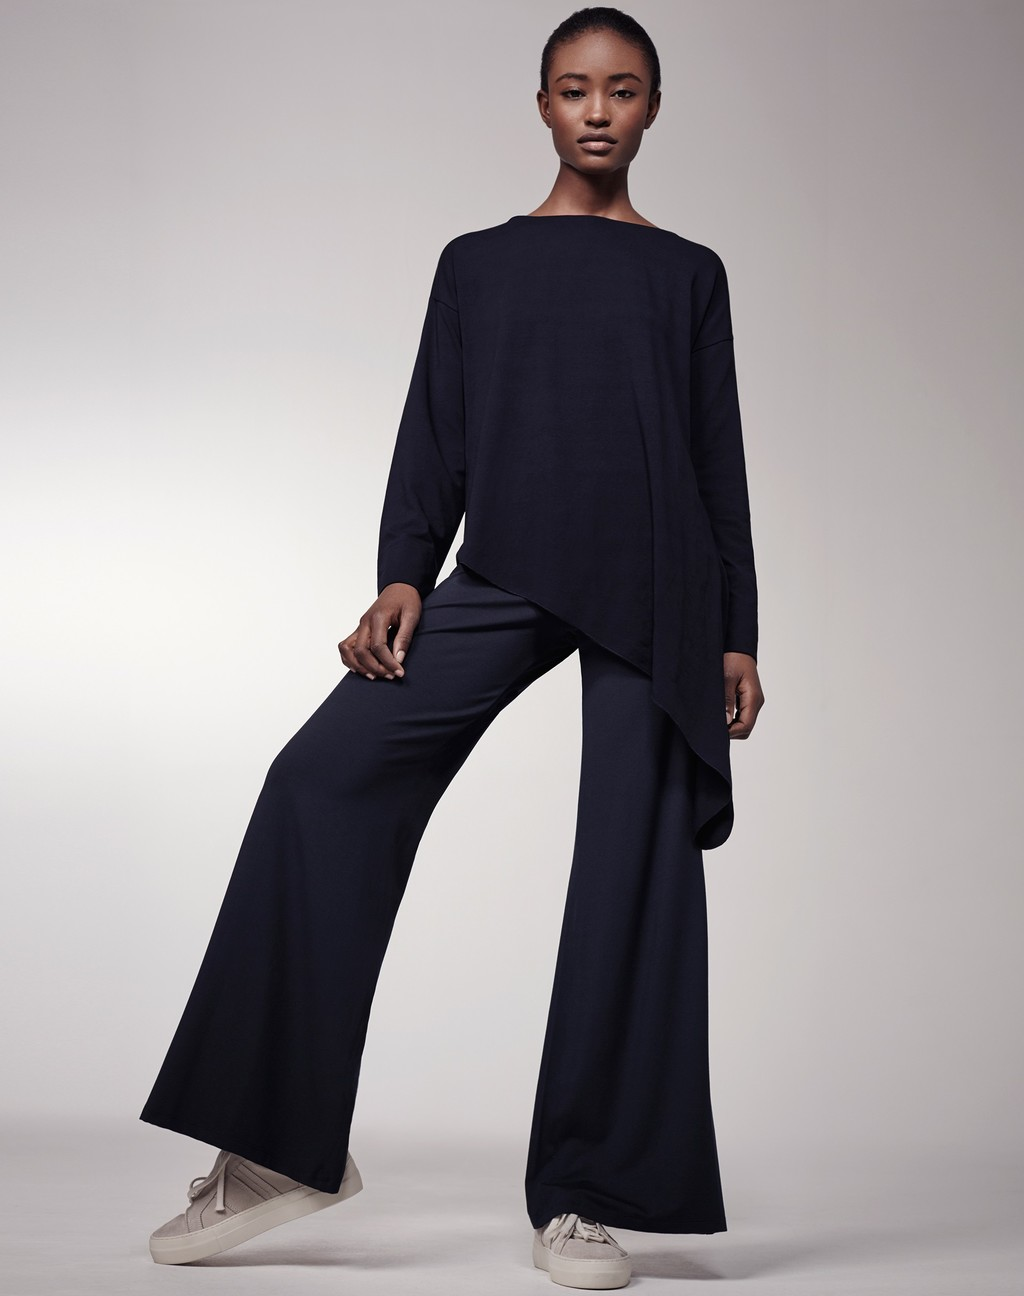 Palazzo Pants Navy - pattern: plain; predominant colour: navy; occasions: casual, creative work; length: standard; style: top; fibres: viscose/rayon - stretch; fit: body skimming; neckline: crew; sleeve length: long sleeve; sleeve style: standard; pattern type: fabric; texture group: other - light to midweight; season: s/s 2016